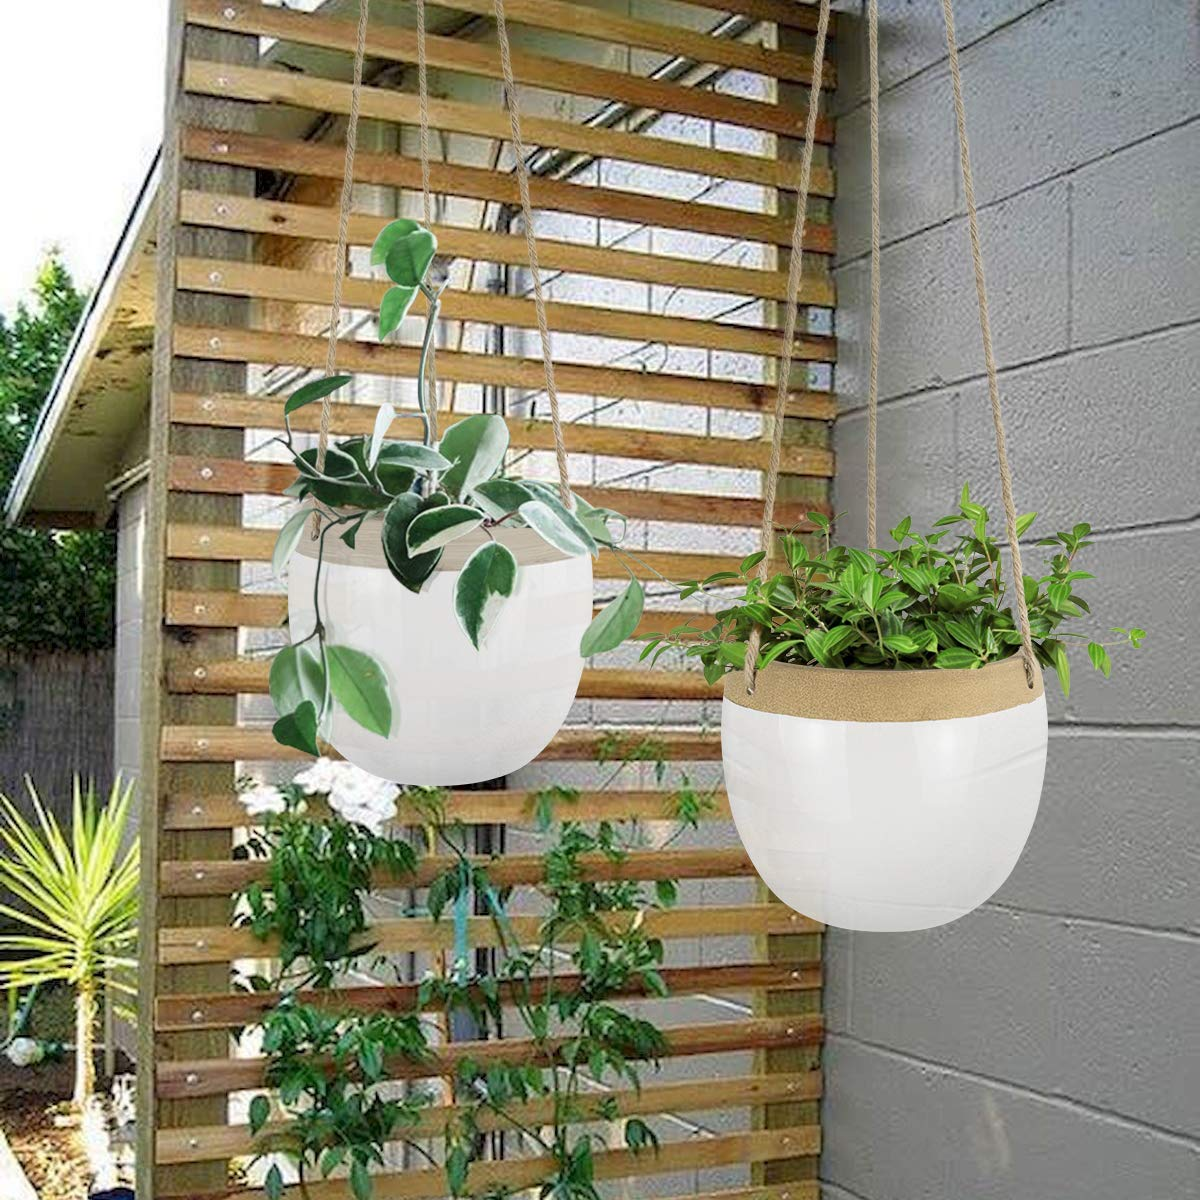 5.5 Inch White Indoor Hanging Pots Modern Plant Holder with Jute Rope for Succulents Cactus Herbs Small Plants Ceramic Hanging Planters Plant Pots Set of 2 Home Decor Gift